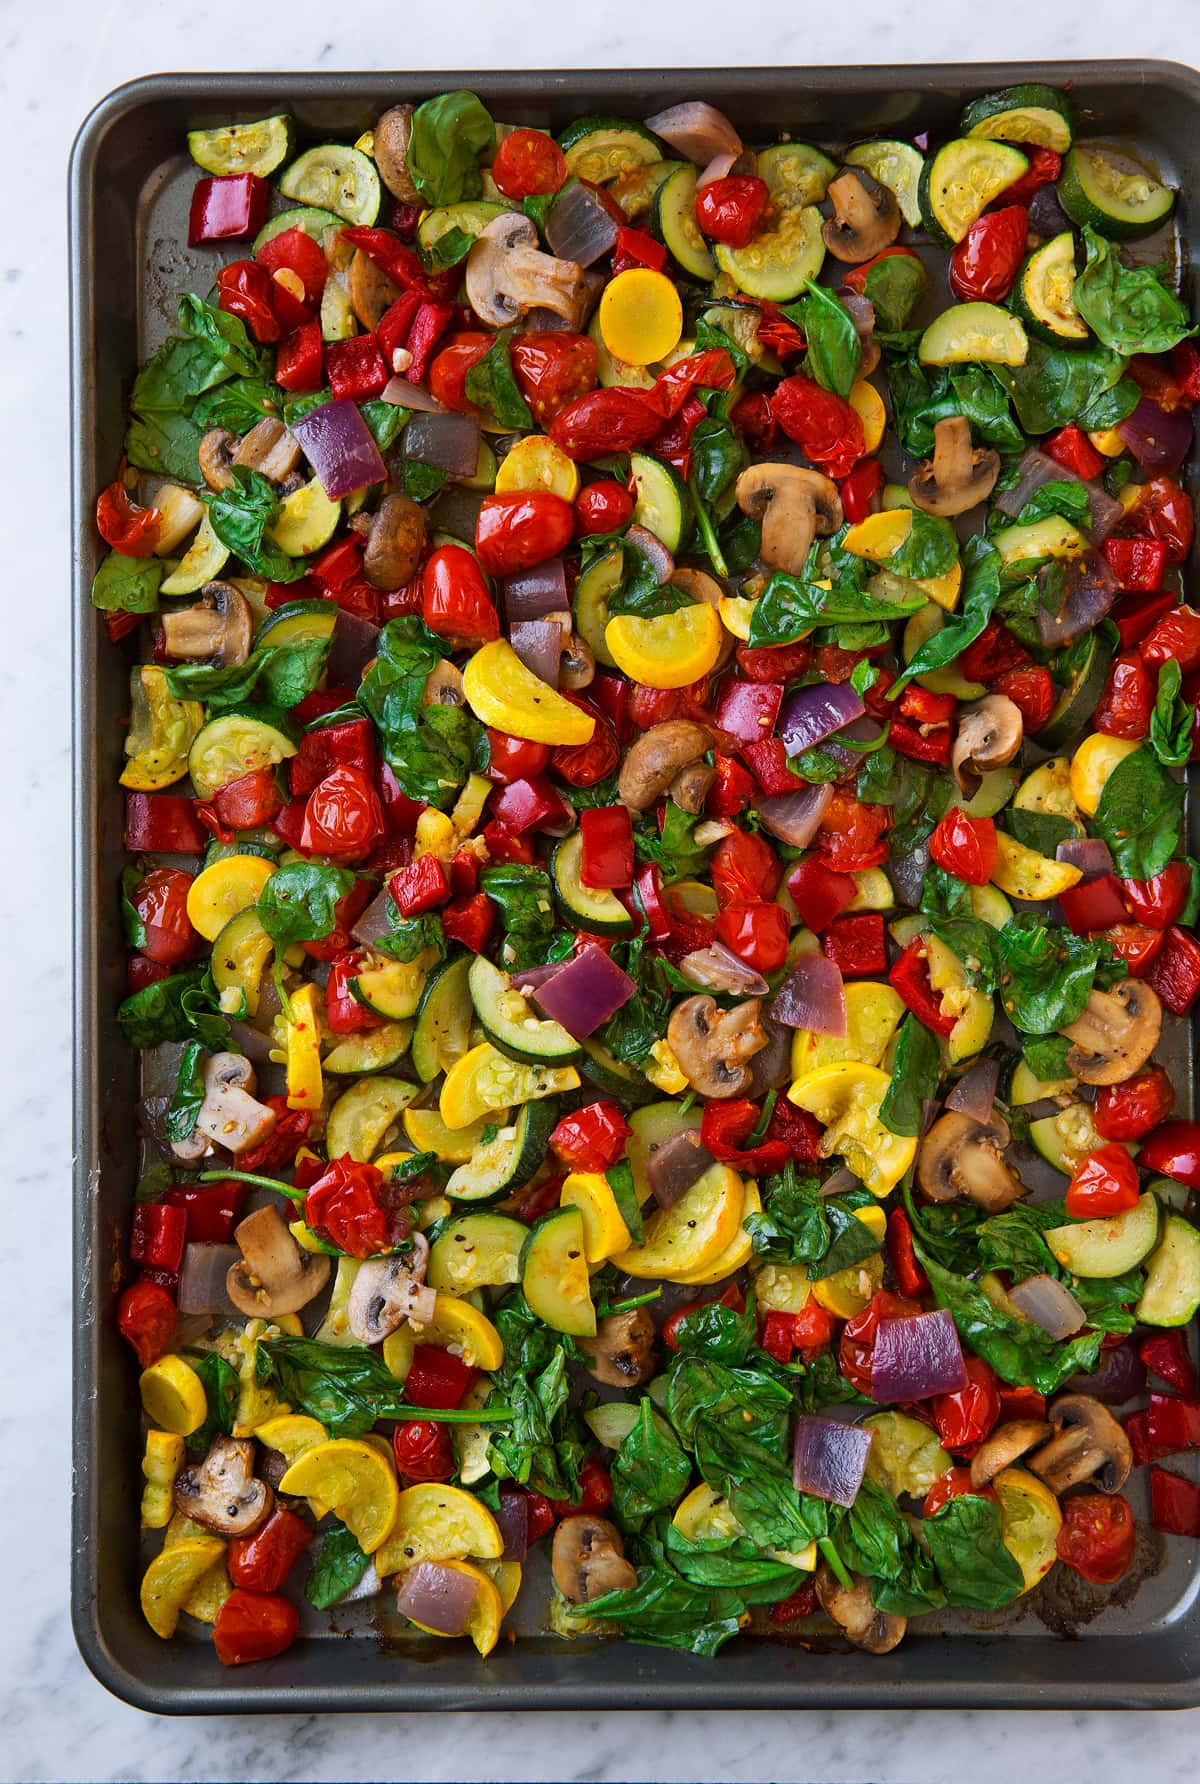 Roasted vegetables on a baking sheet.